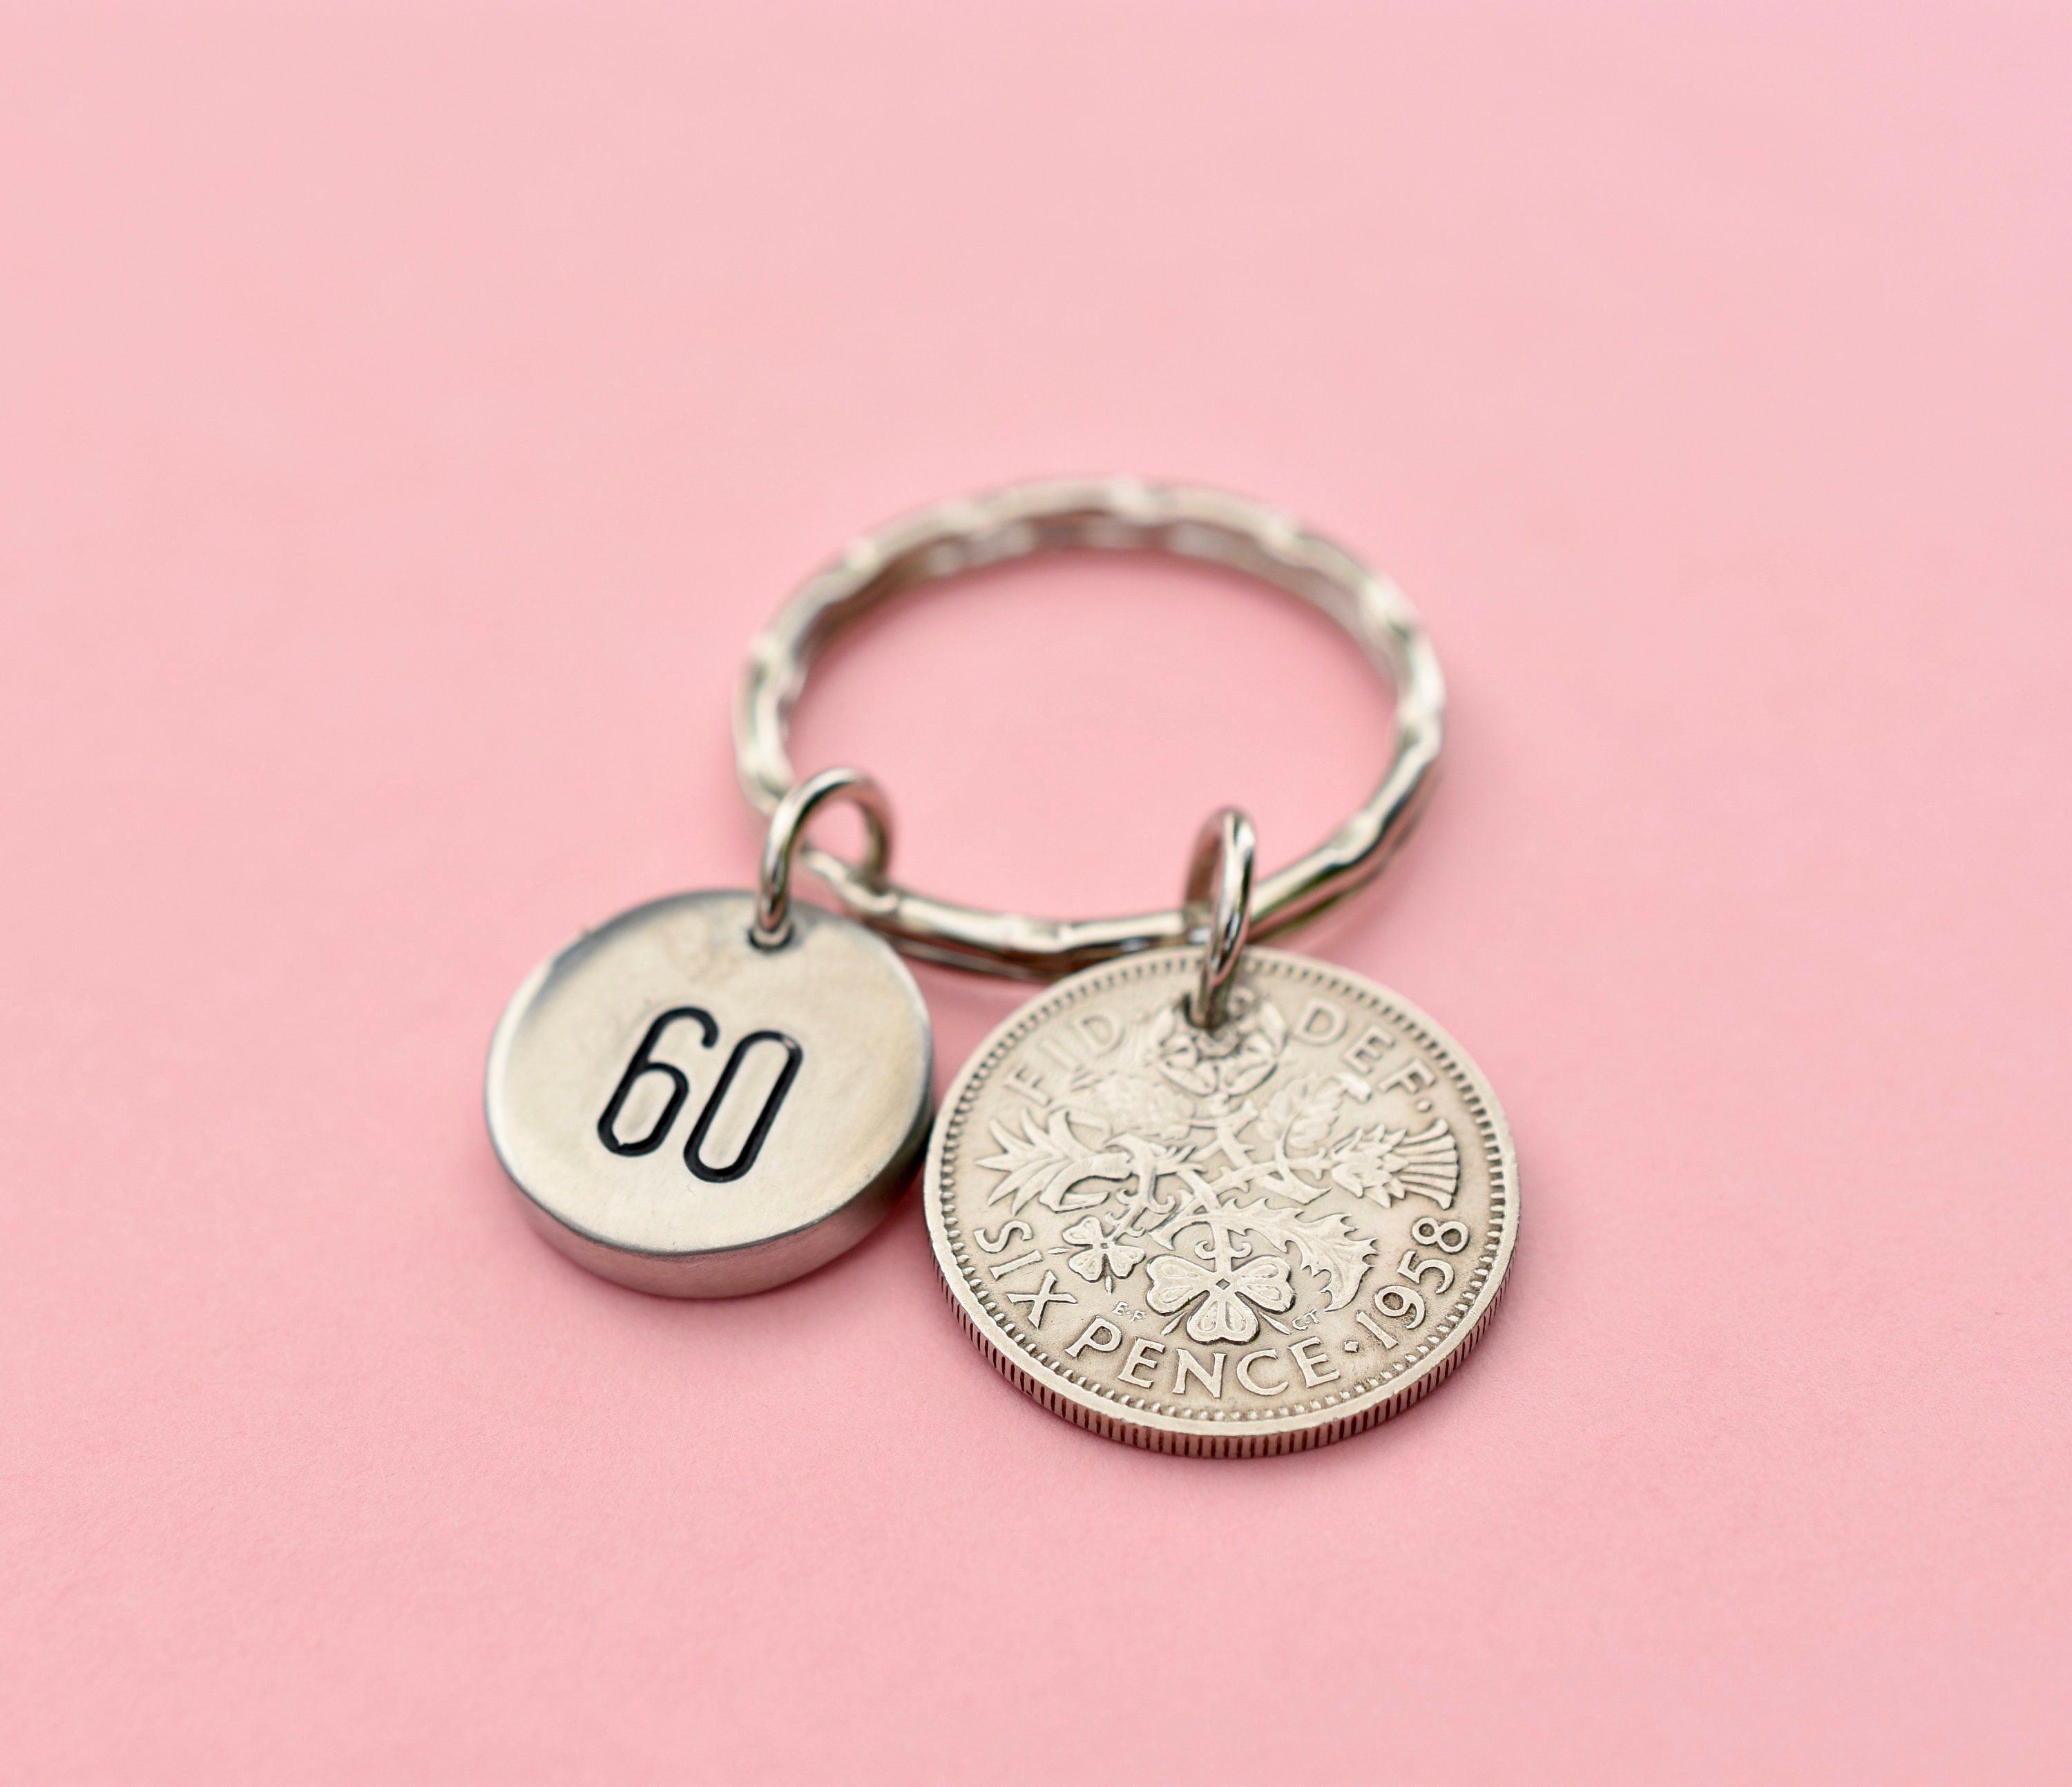 60th Birthday Gifts For Women 1958 Anniversary Present For